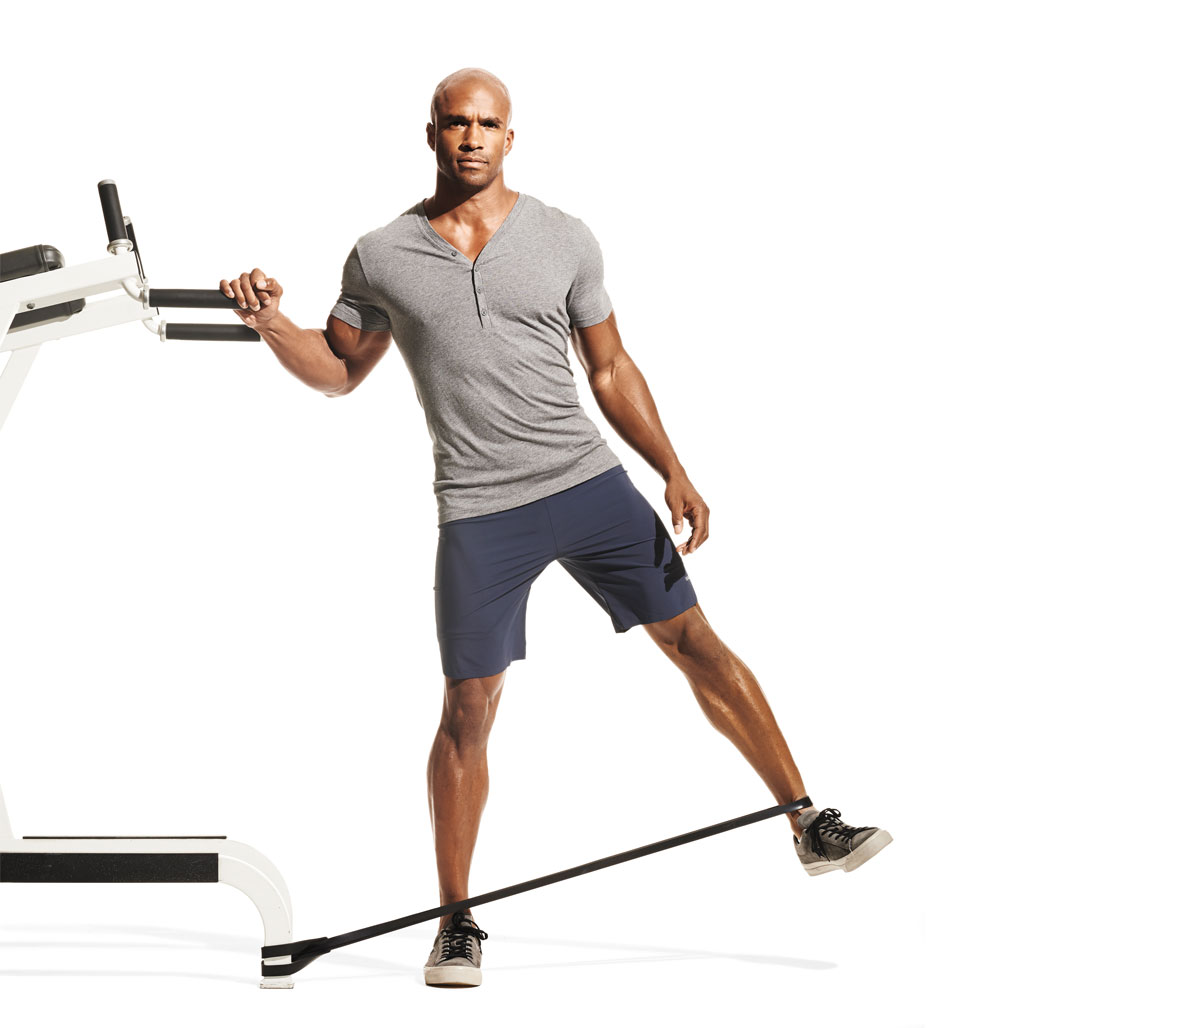 Three Body Weaknesses And How To Fix Them